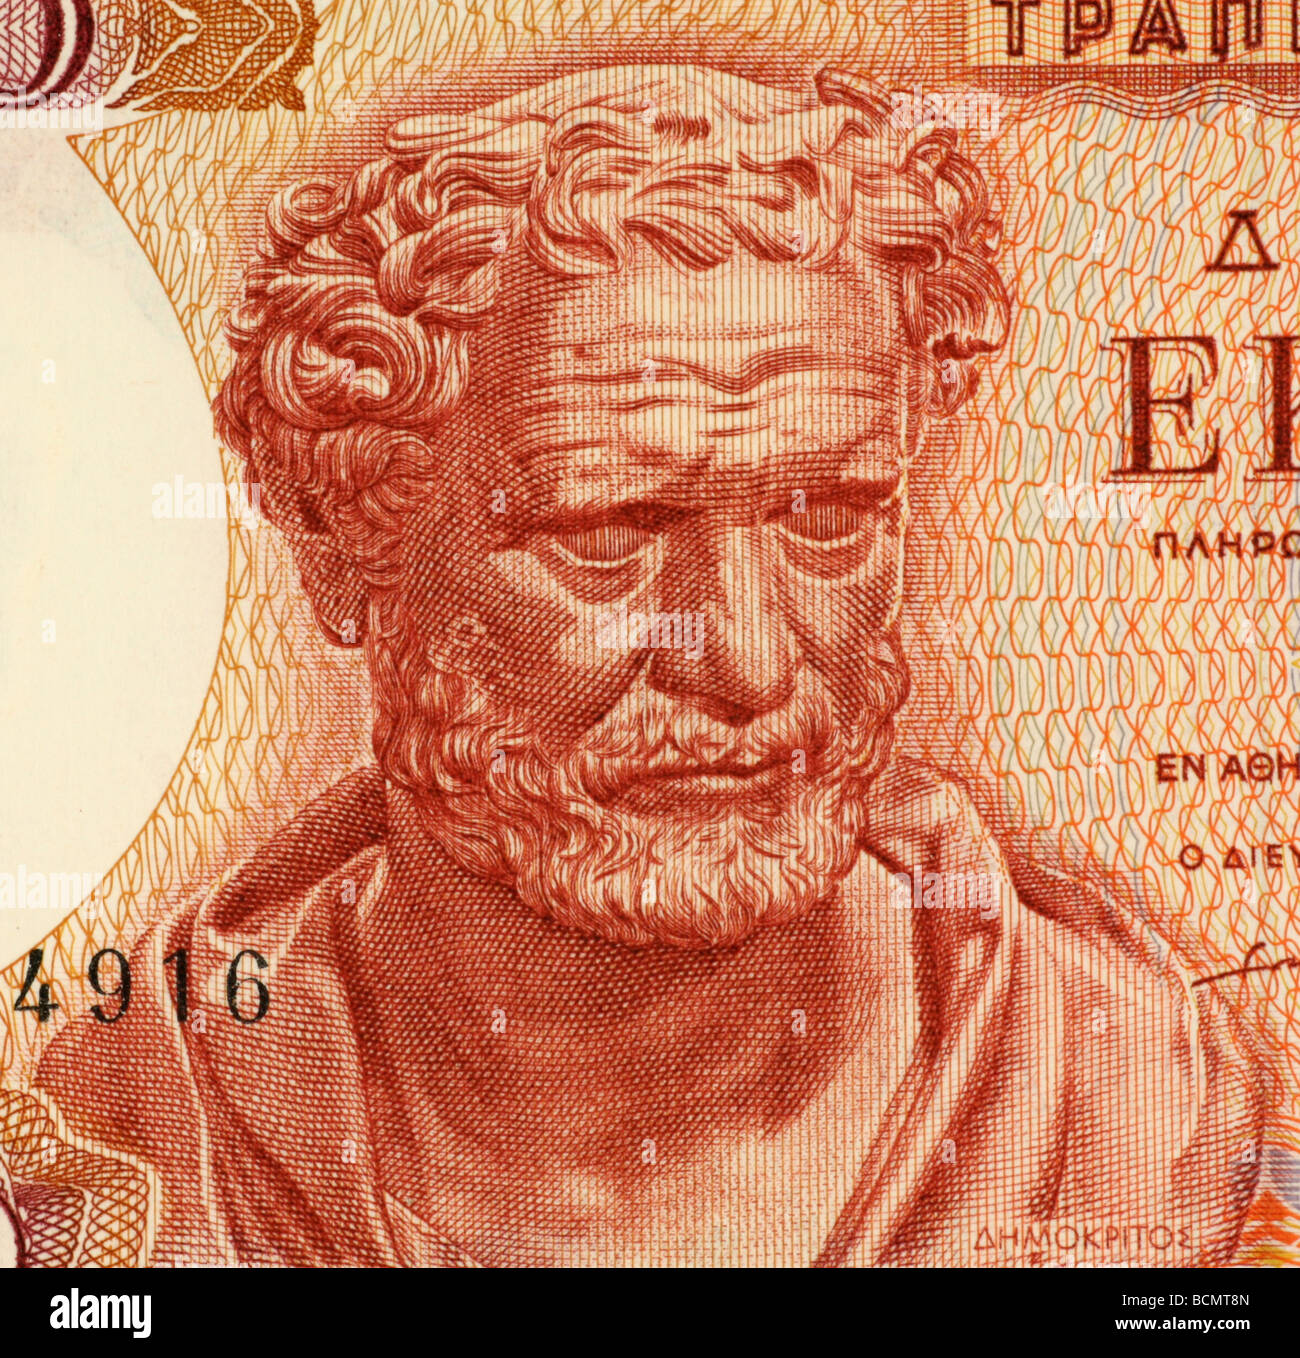 Democritus on 100 Drachmai 1967 Banknote from Greece. Ancient Greek philosopher. - Stock Image